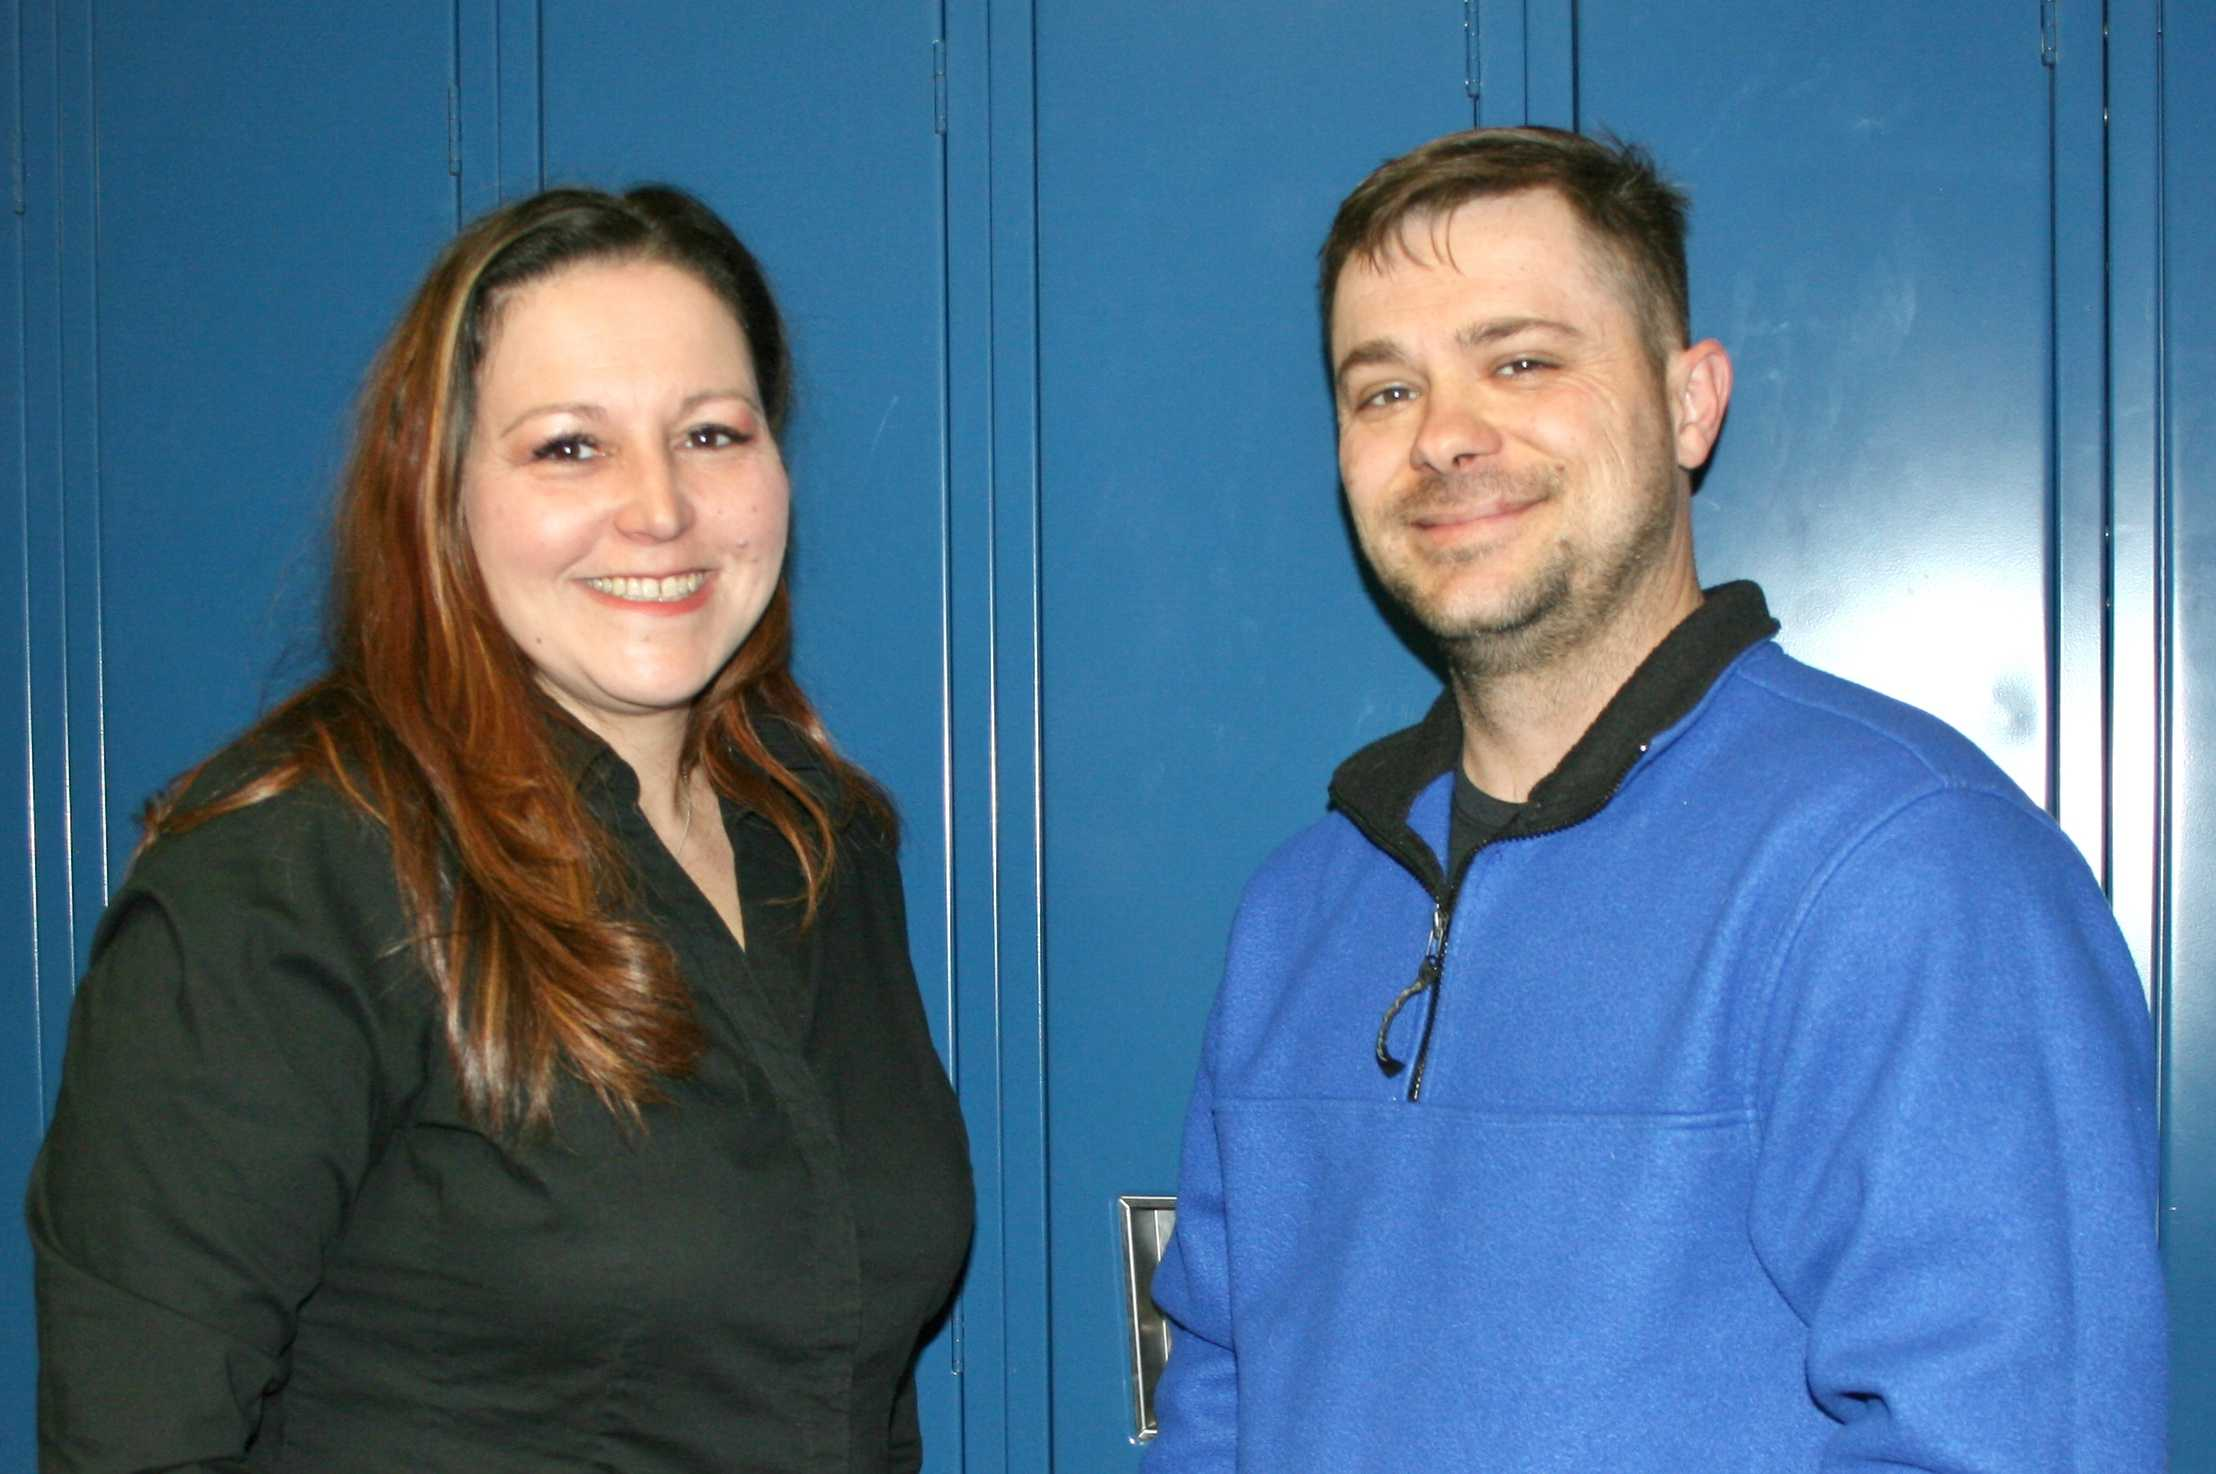 Mrs. LeeAnne Walters and her husband, Mr. Dennis Walters, visited the locker they shared while in high school when they stopped by KHS for an interview in May.